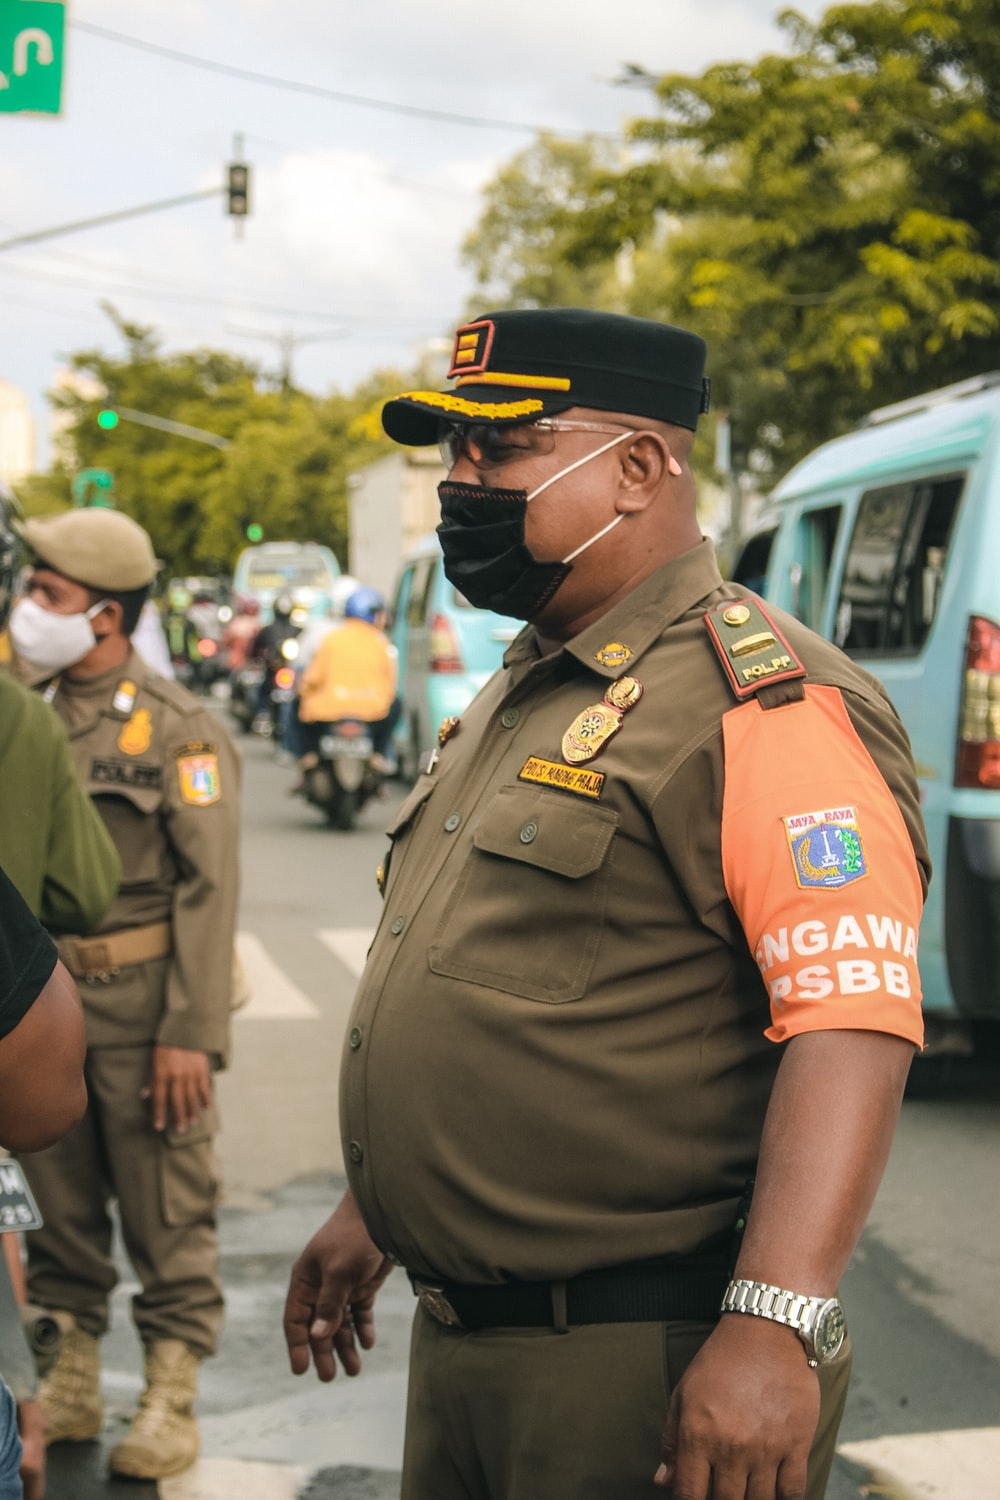 man in green uniform standing near people during daytime